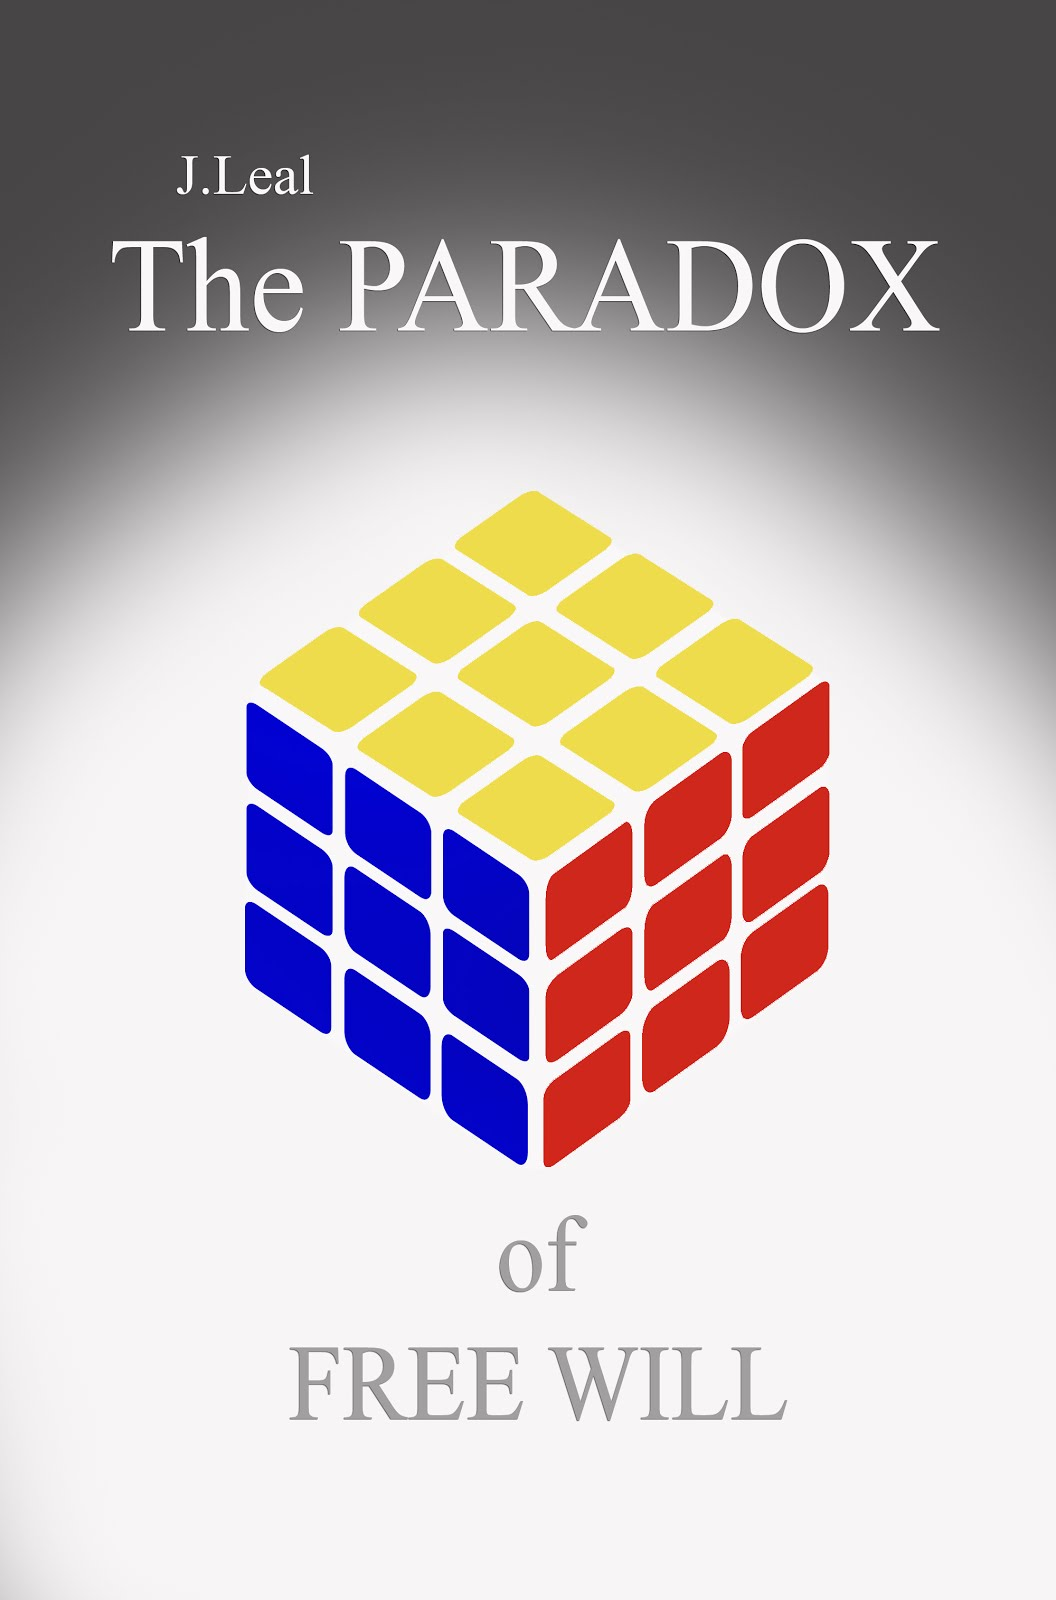 J Leal - THE PARADOX OF FREE WILL - The Matrices of an